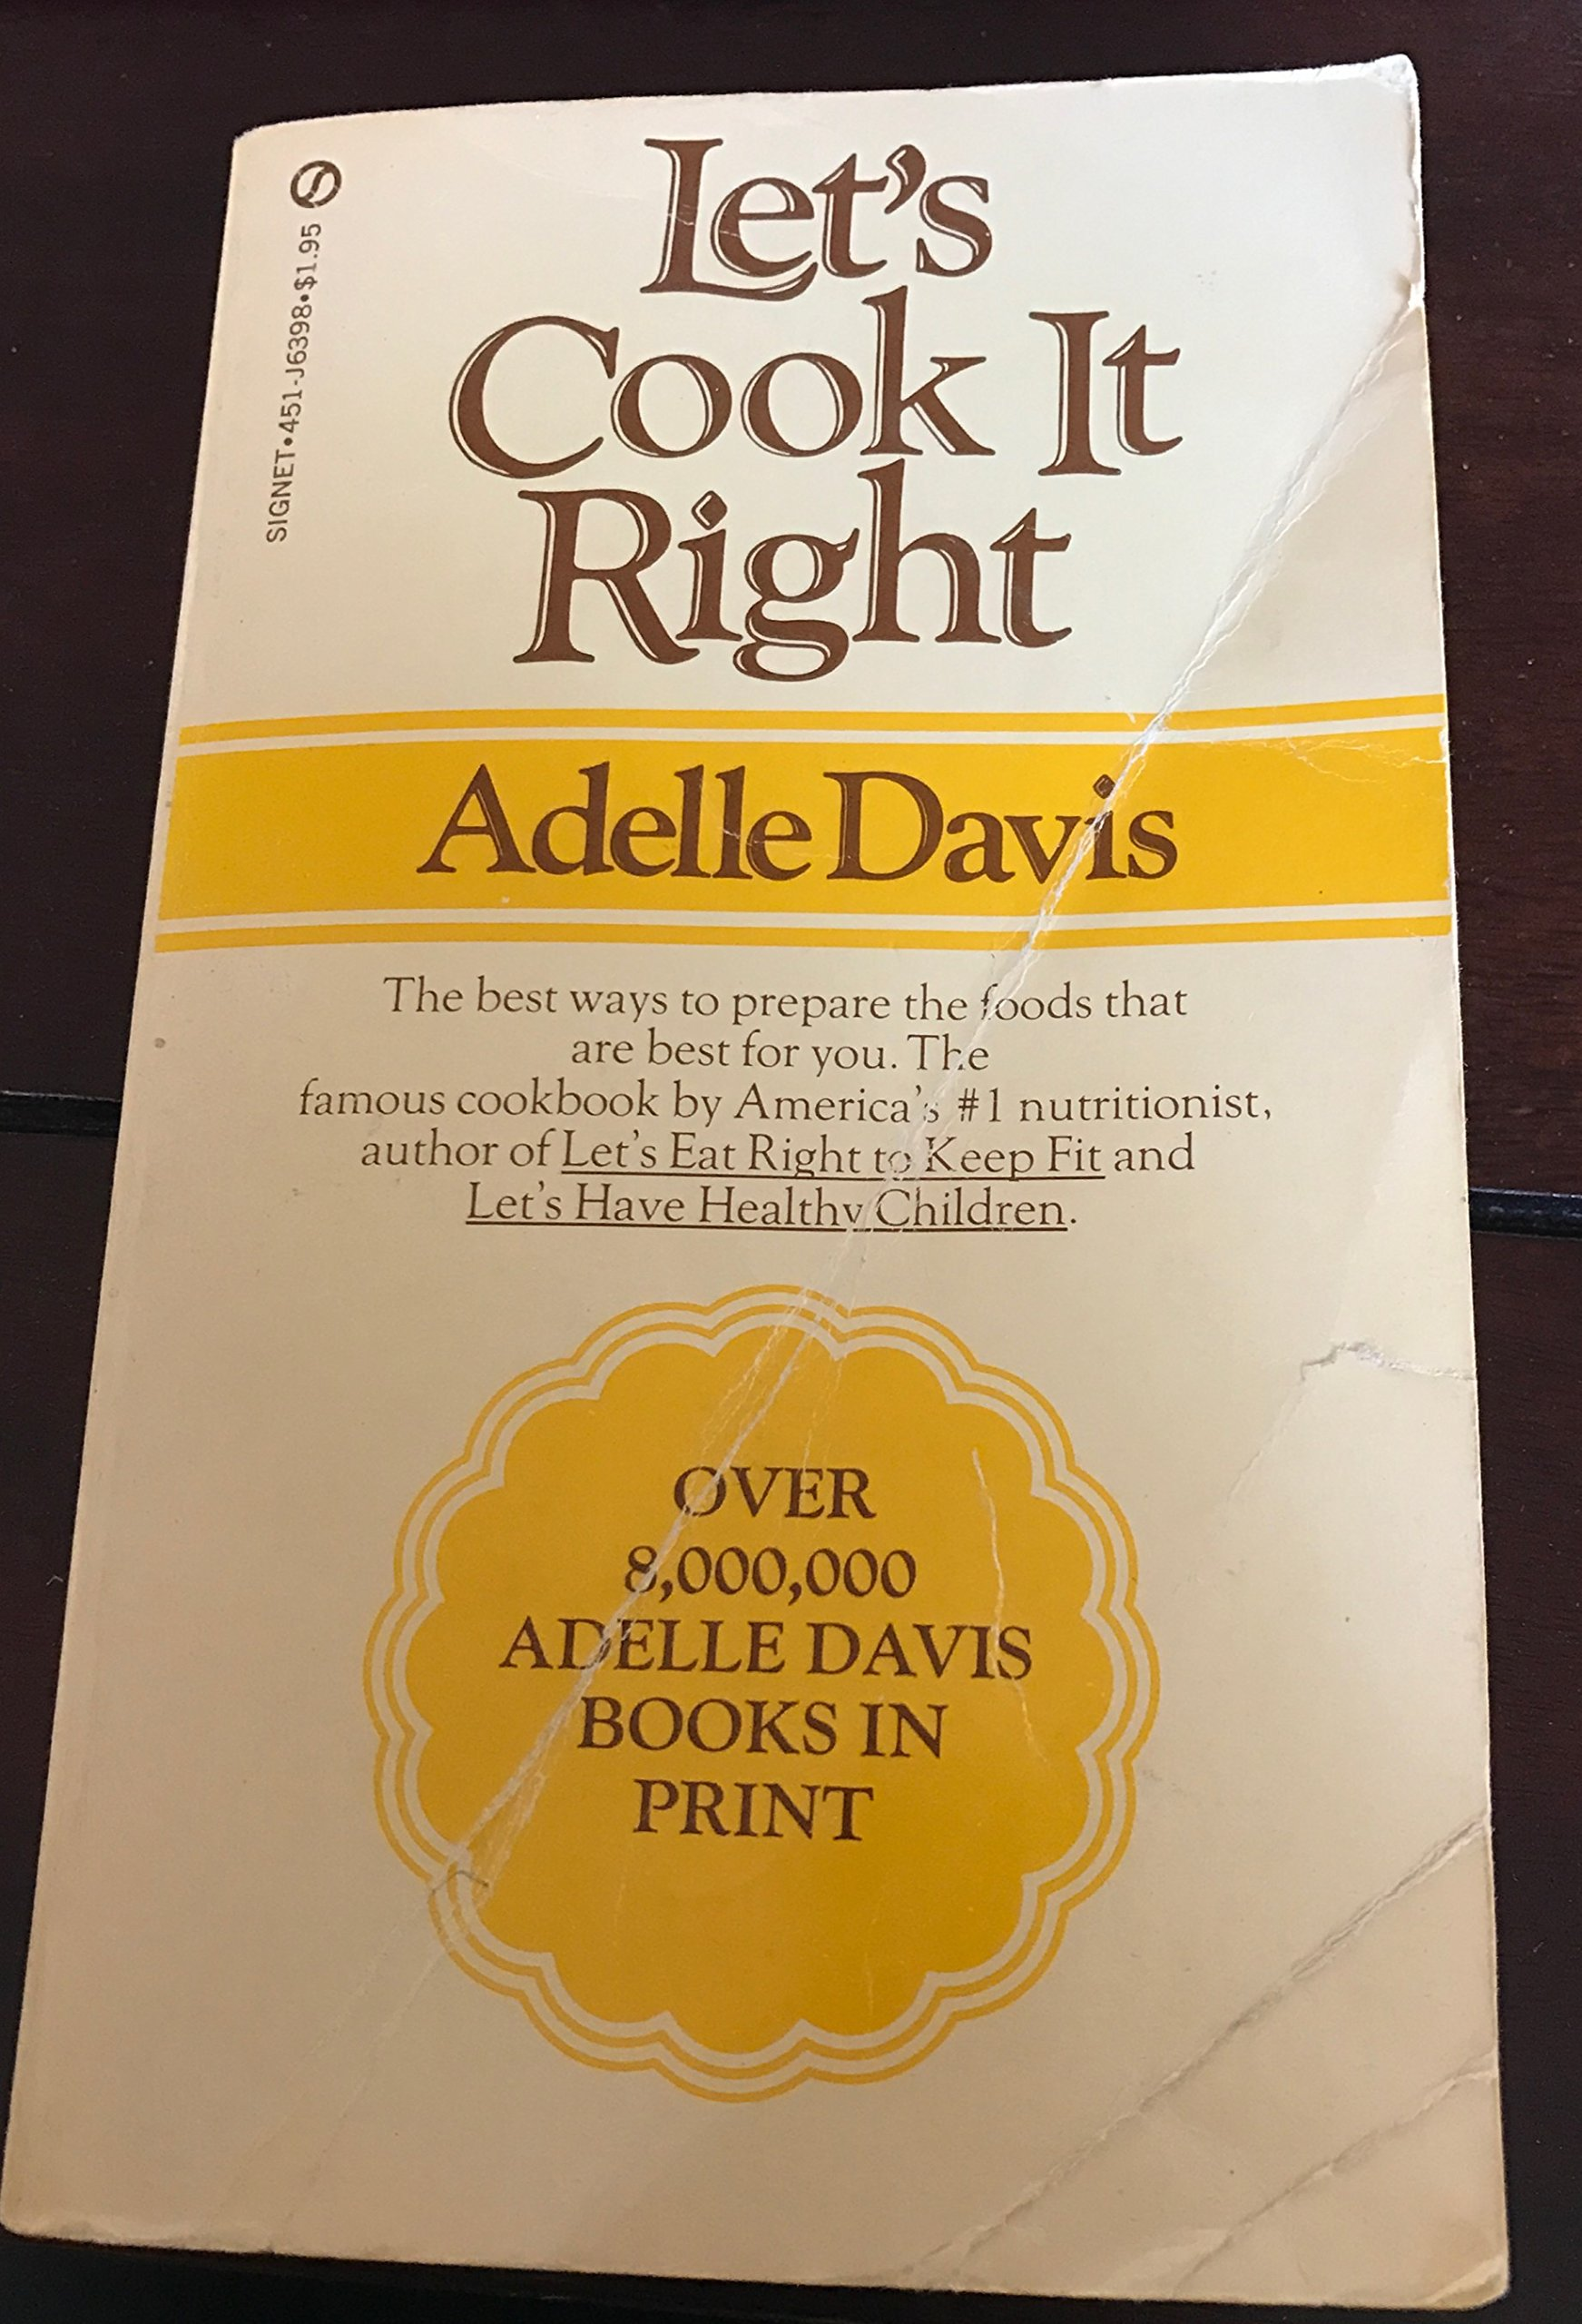 LET S COOK IT RIGHT EBOOK